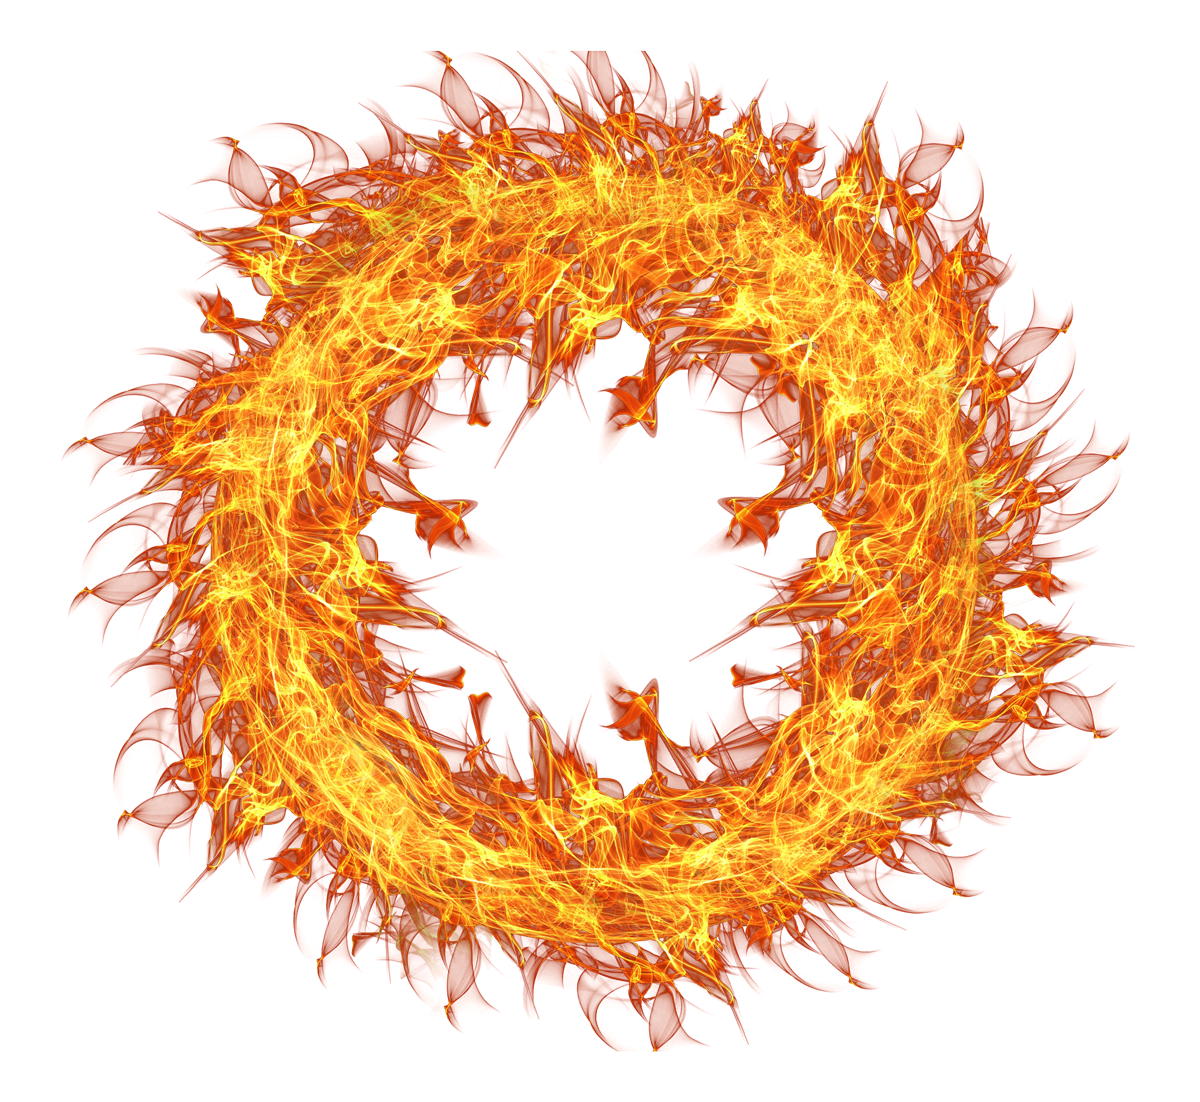 Circle Of Fire Png image #44292